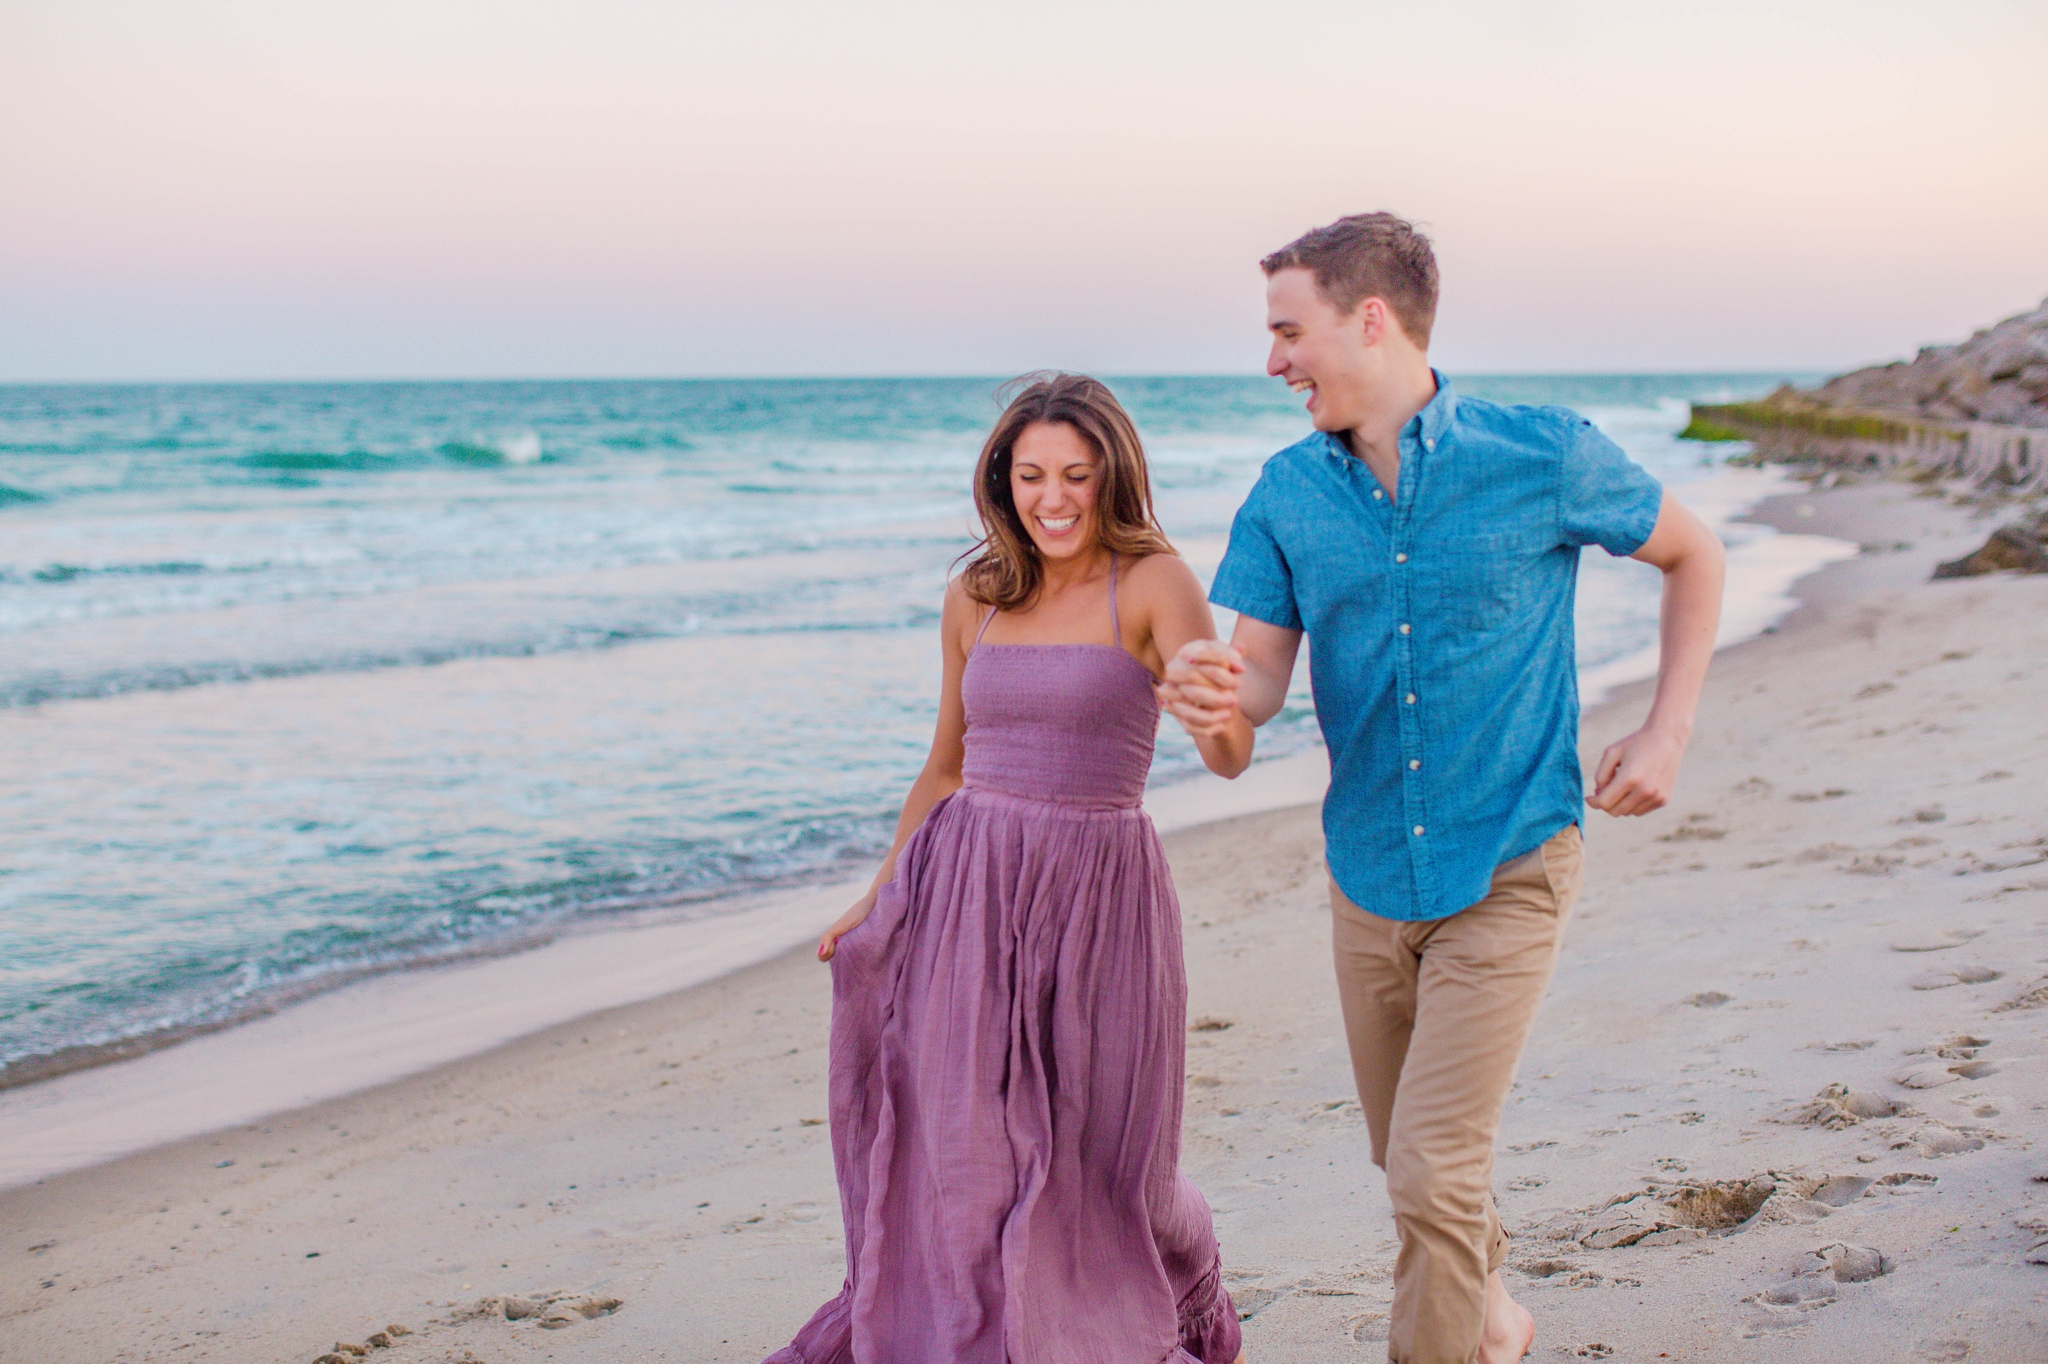 man and woman running on the beach and laughing - Woman is in a flowy pastel maxi dress - candid and unposed golden light session - beach engagement photographer in honolulu, oahu, hawaii - johanna dye photography